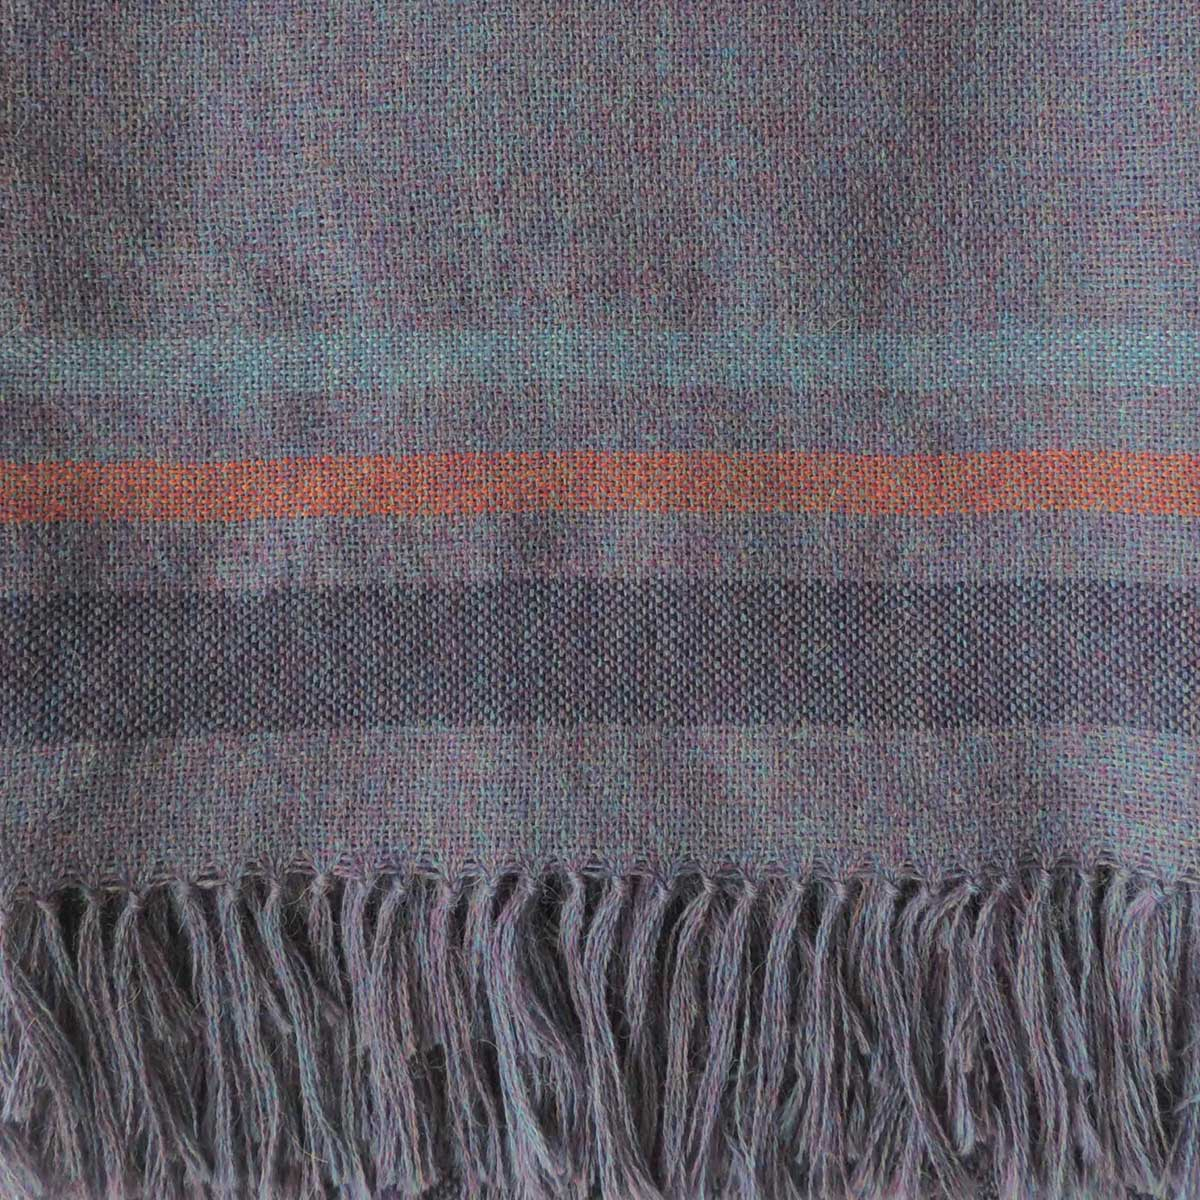 PFL HOME alpaca, baby alpaca handwoven throws and blankets